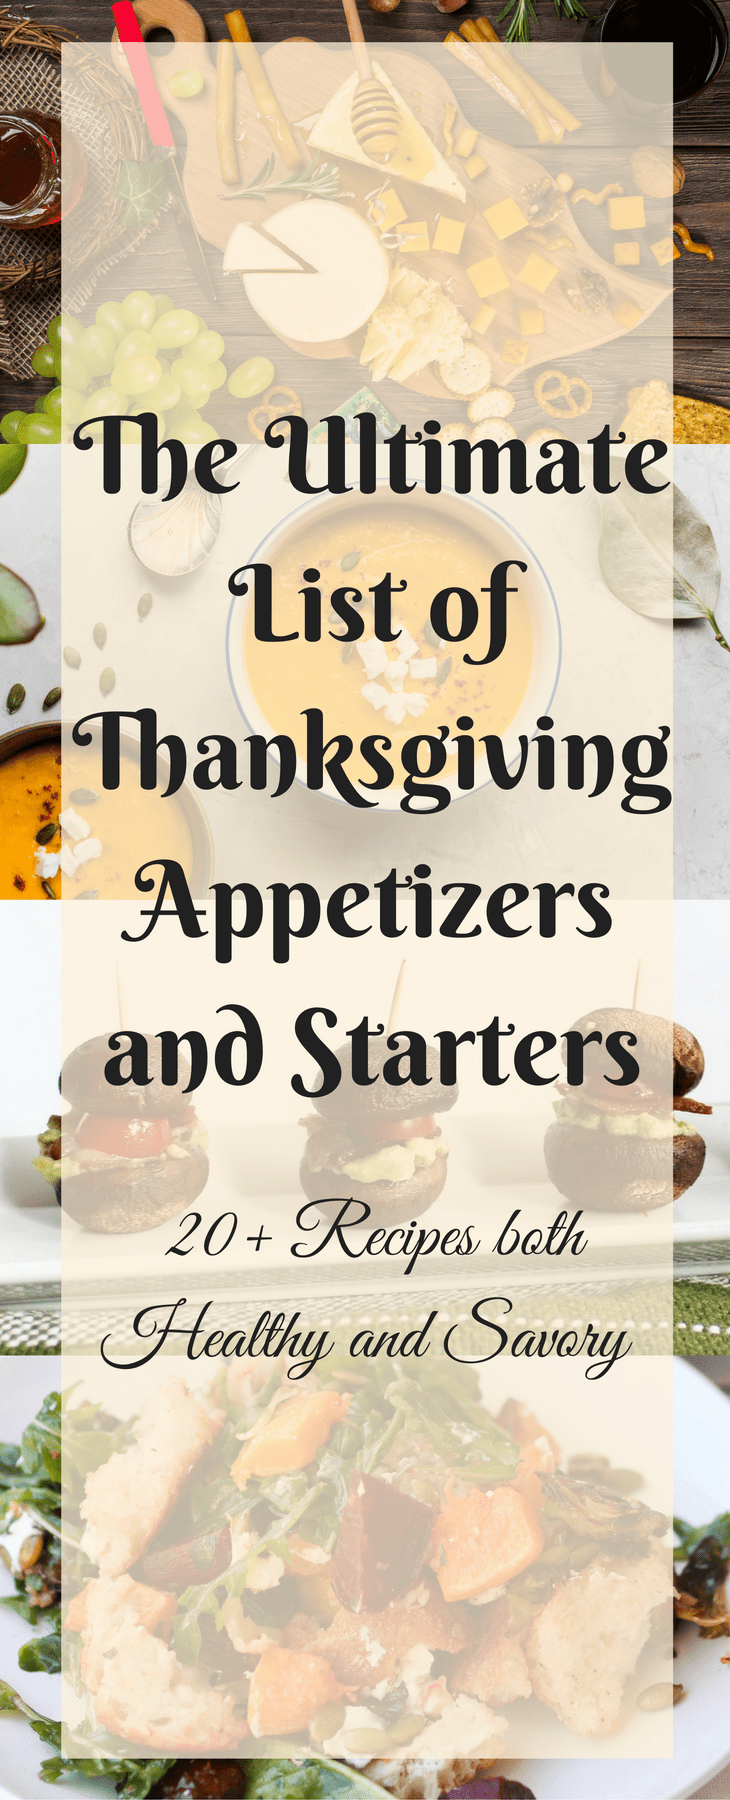 Thanksgiving Appetizers and Starters Pin